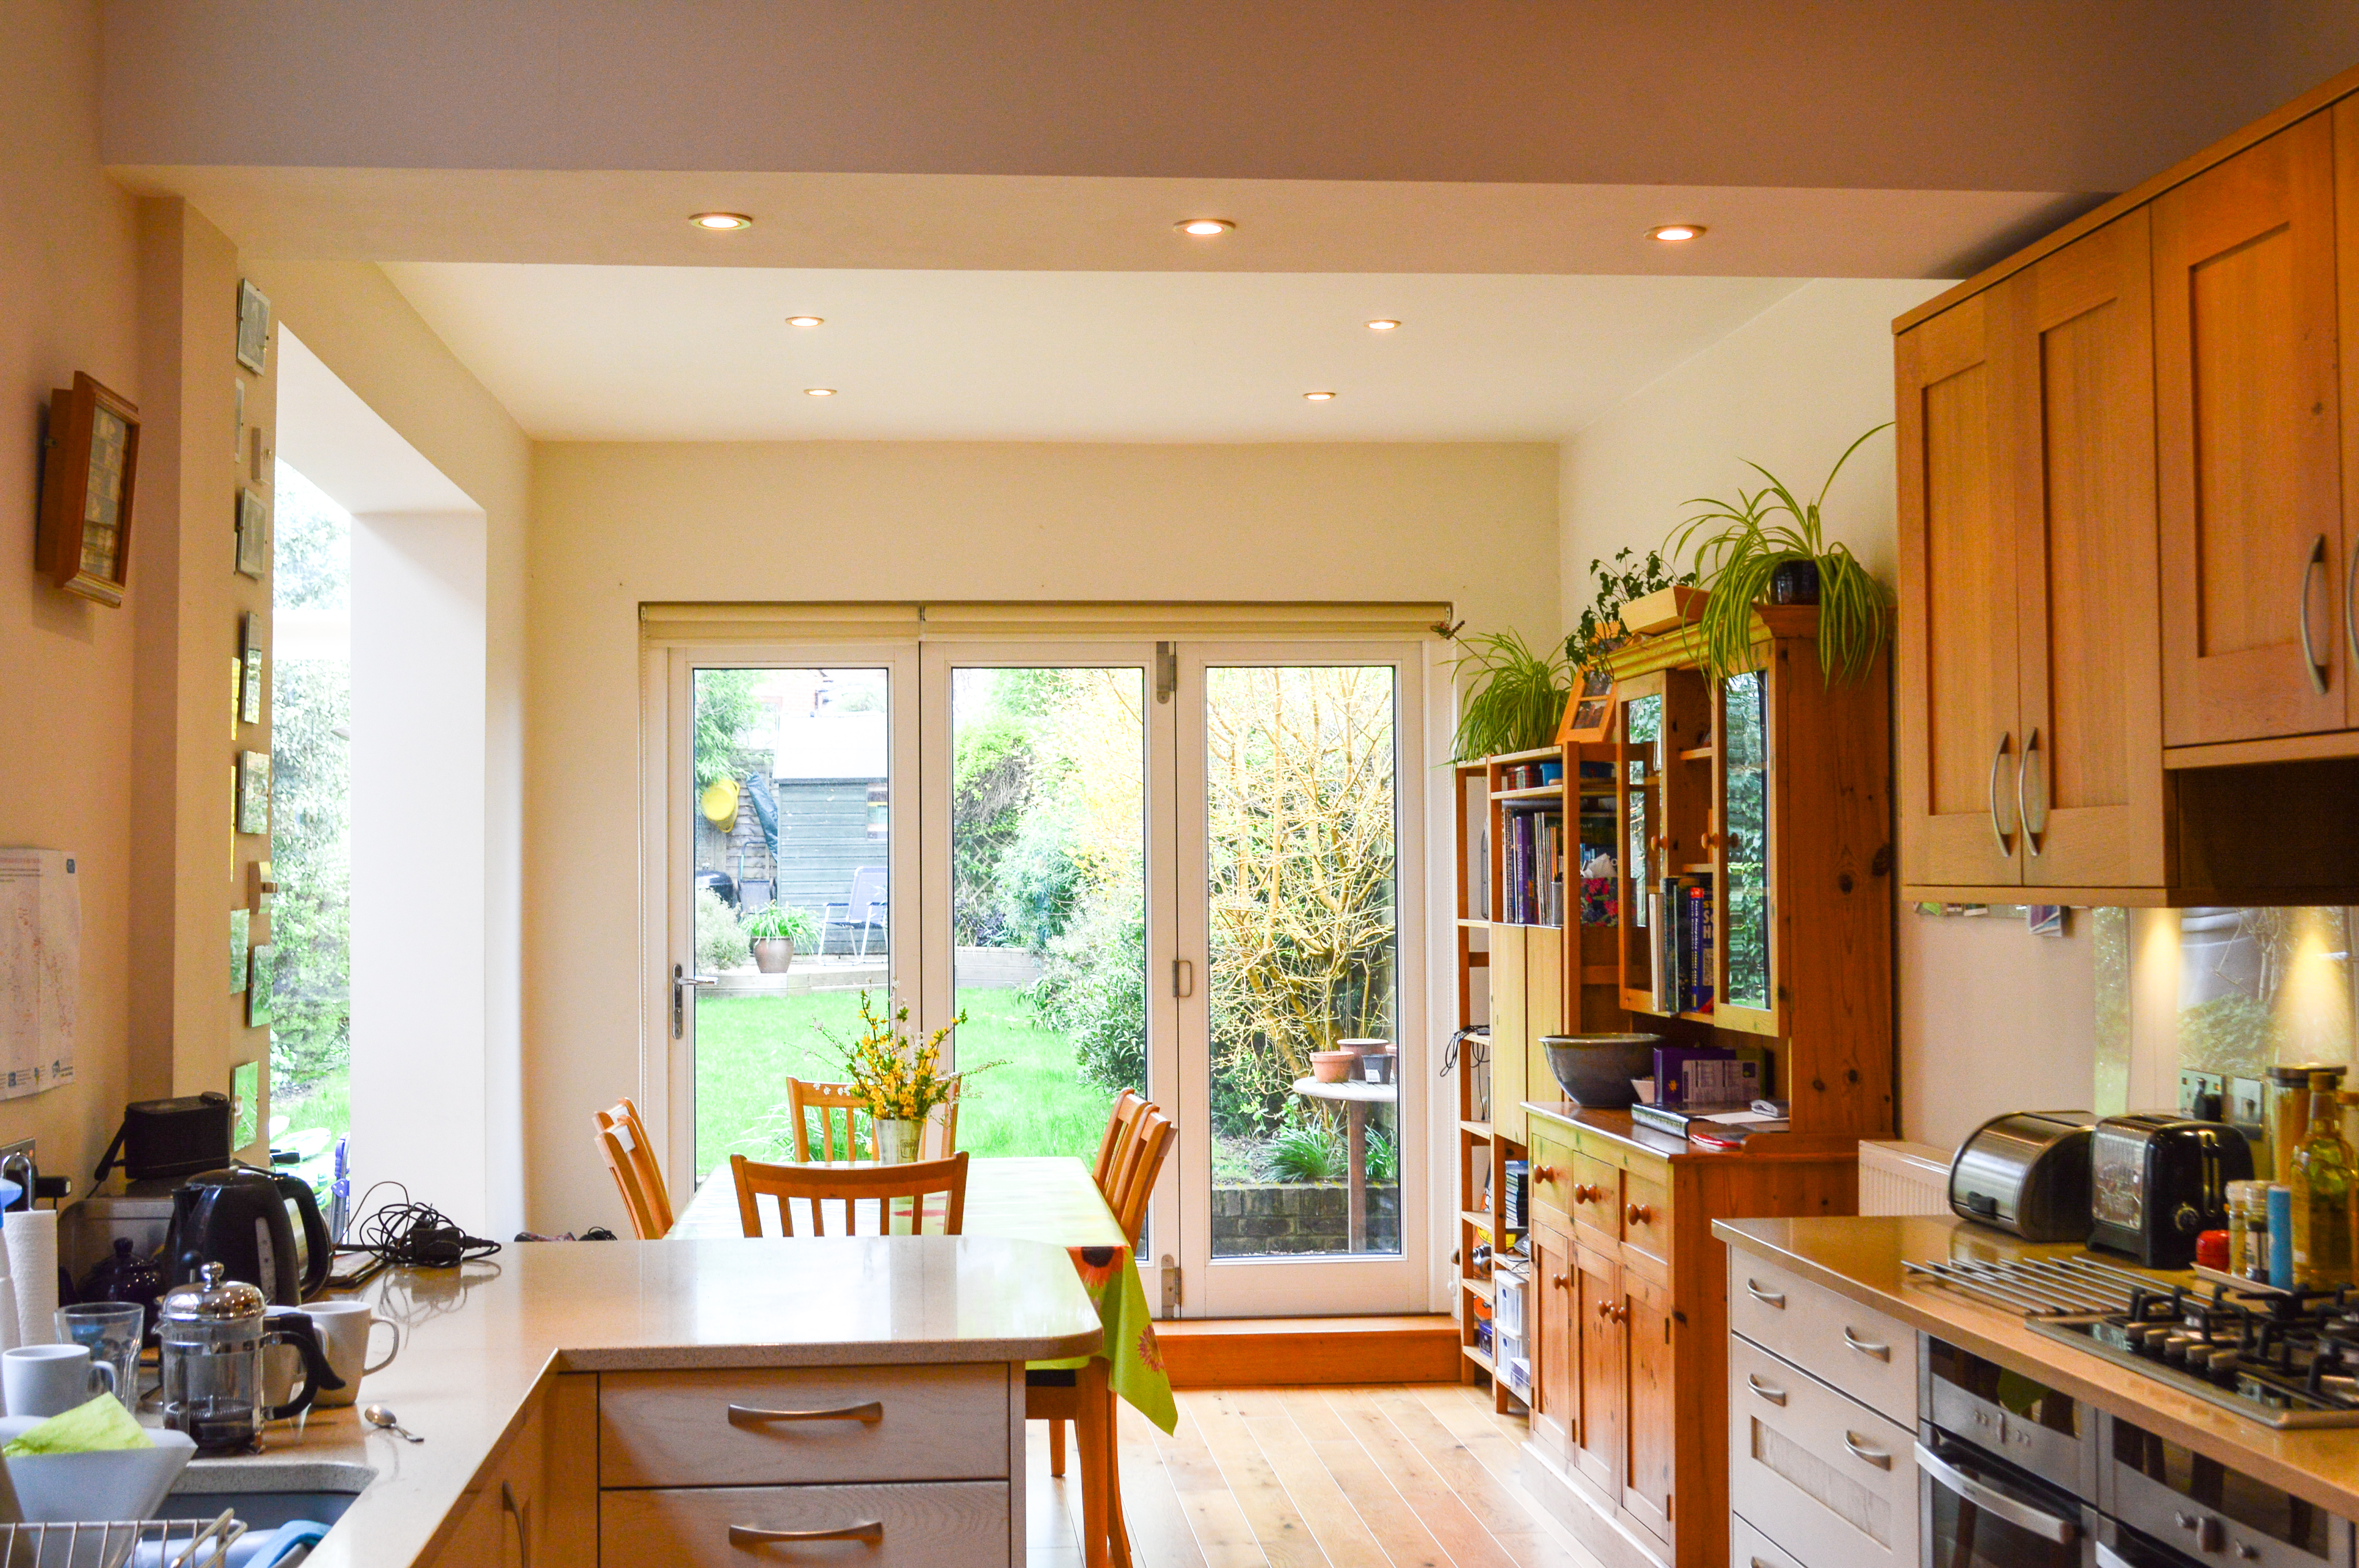 kitchen in a side extension